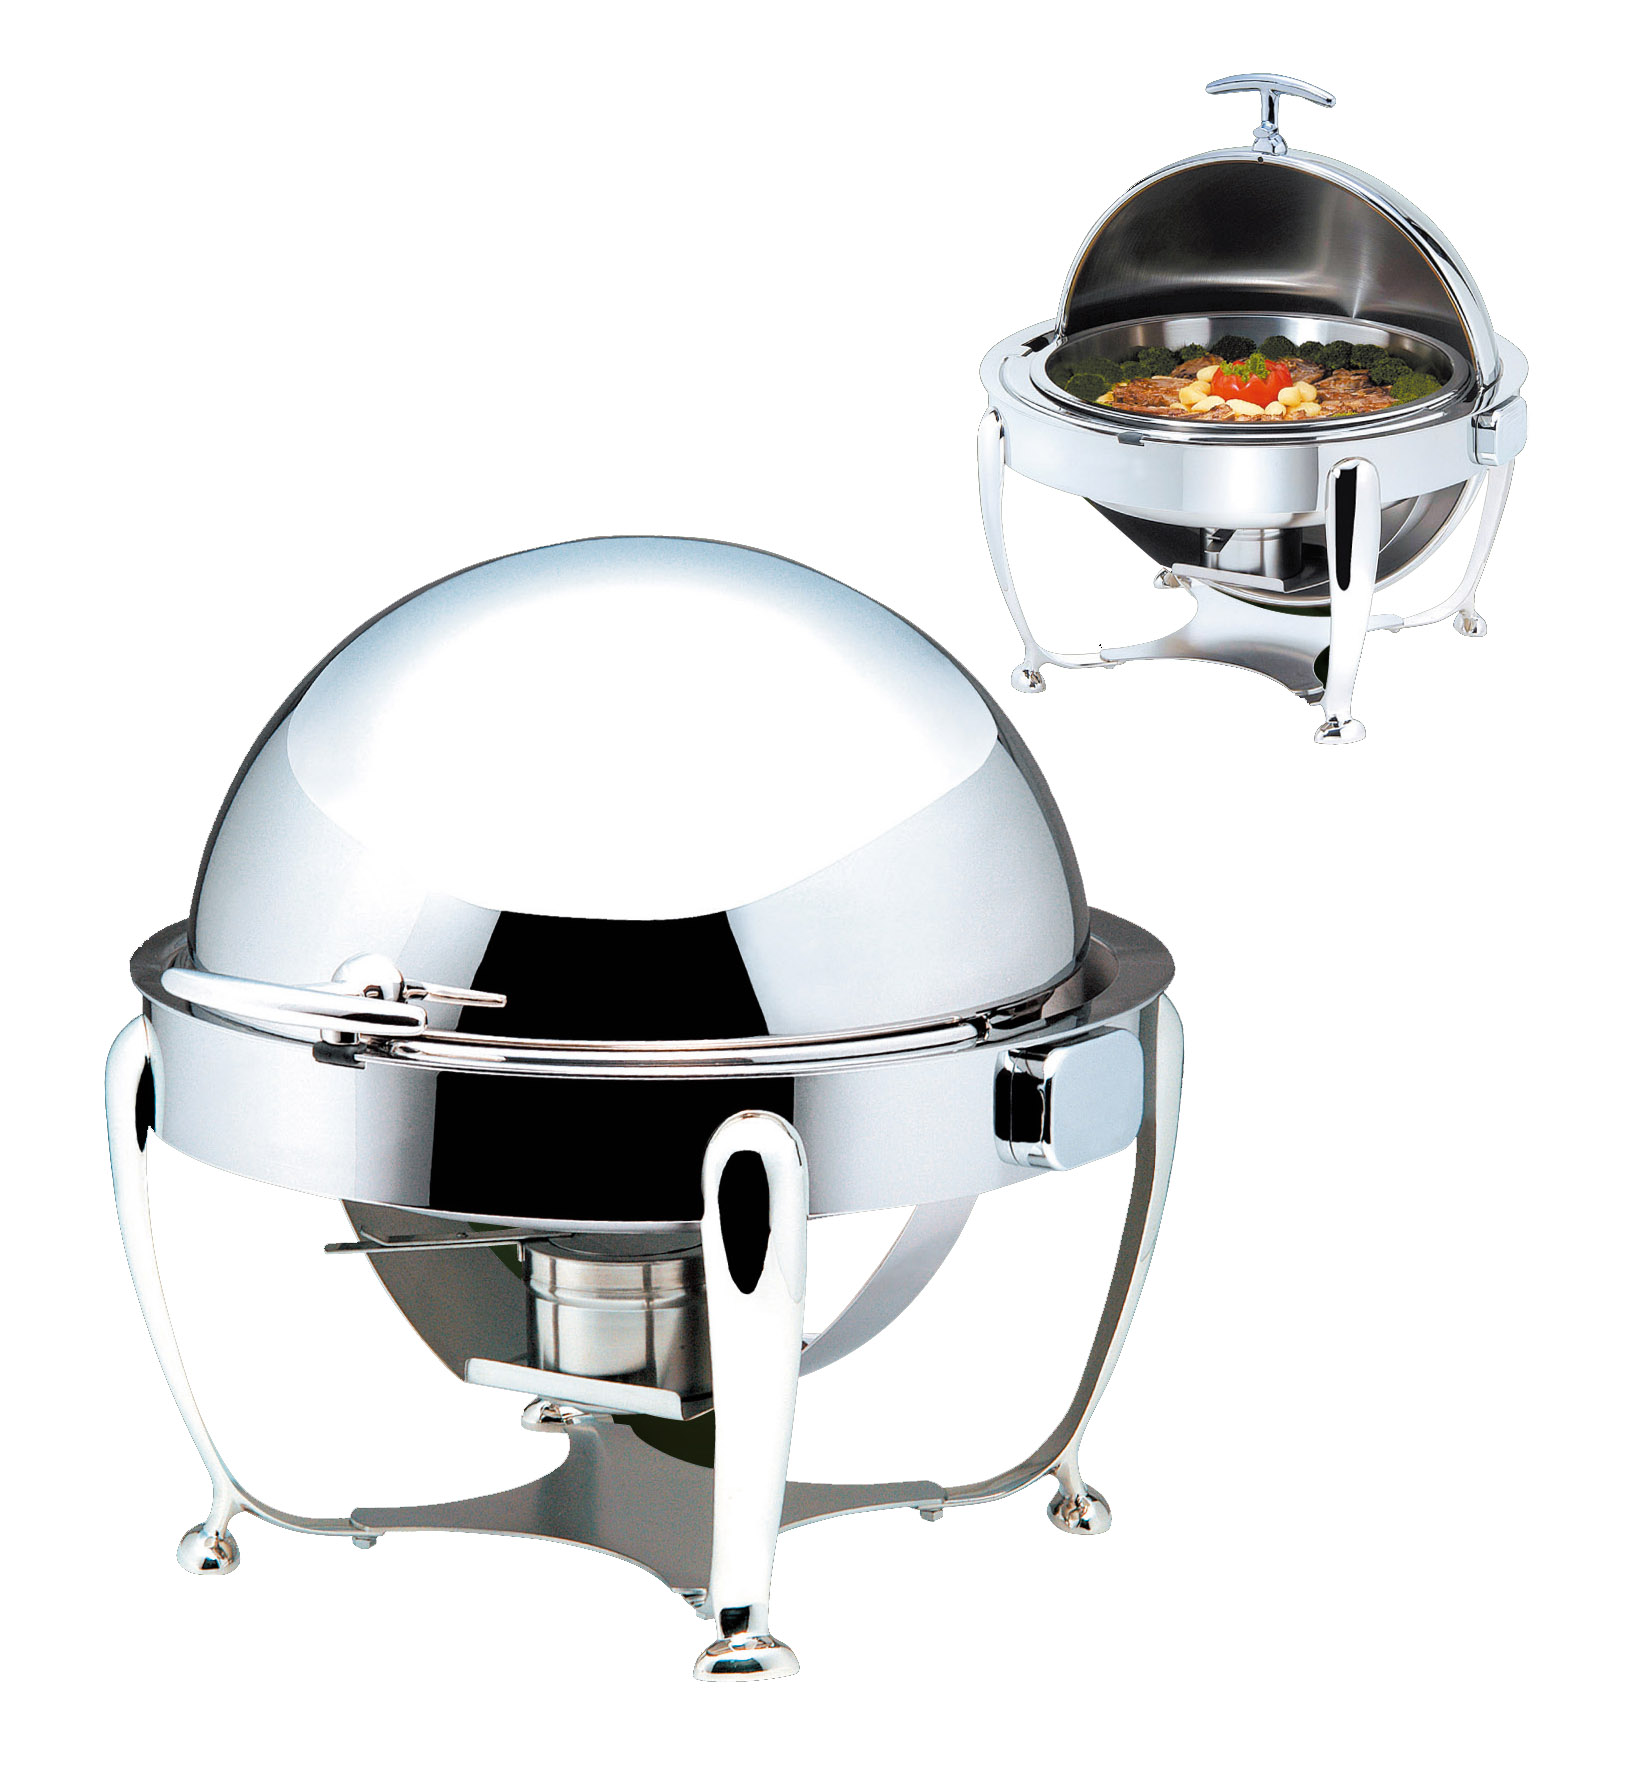 CHAFER ROUND INFINITI CLASSIC - ROLLTOP - 330mm